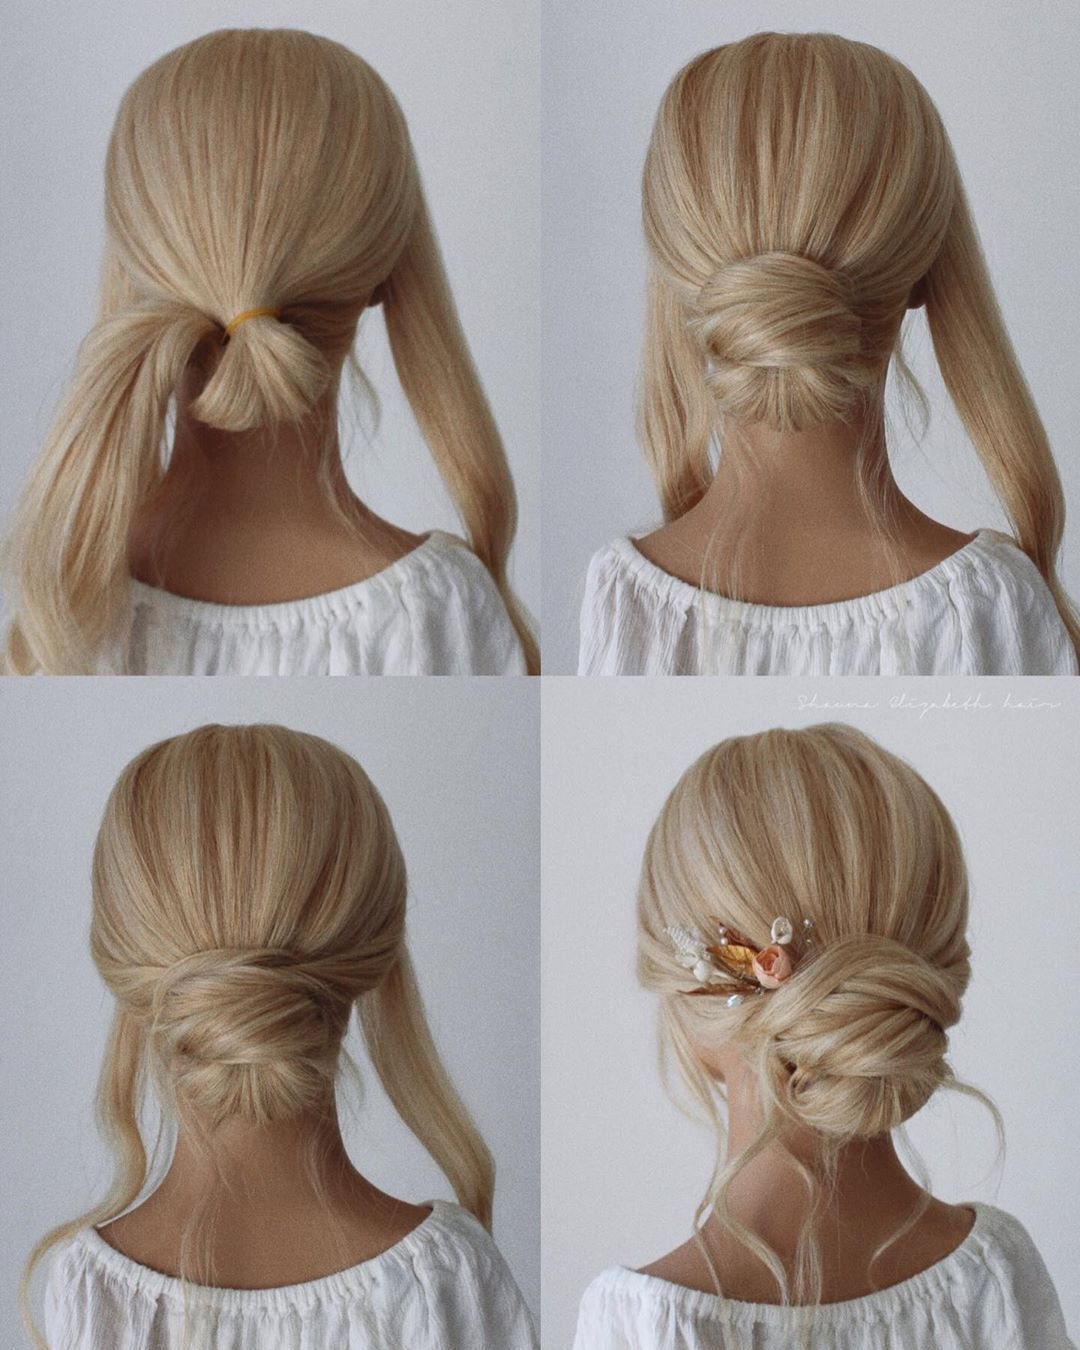 "𝐒𝐇𝐀𝐔𝐍𝐀 𝐄𝐋𝐈𝐙𝐀𝐁𝐄𝐓𝐇 on Instagram: ""Step by step tutorial using the Ally mannequin available via in 2020 